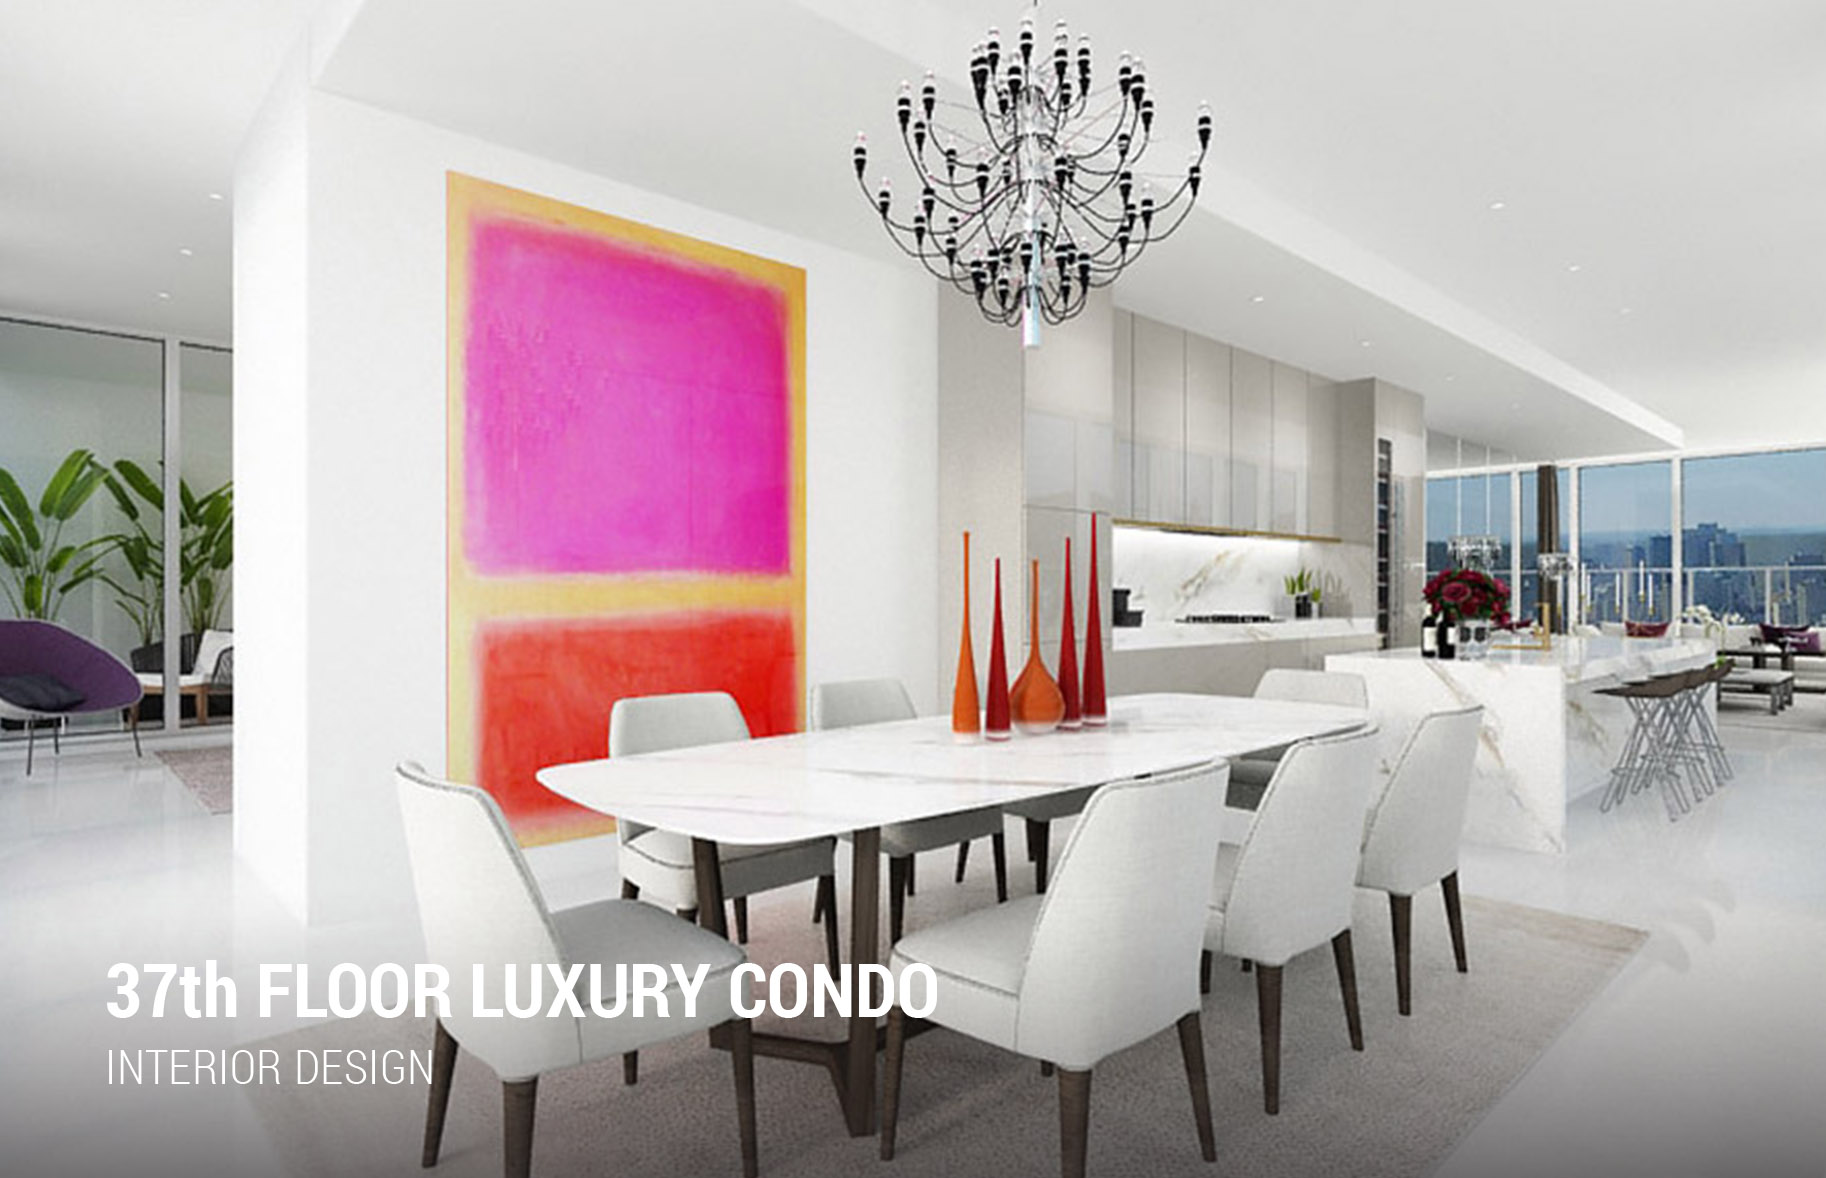 Schema Dimitra Chrona designer, creative director, architectural, 3D visualization, 3D Rendering, branding websites, digital, graphic design, interior design, real estate, luxury property, staging, museum, virtual, art, brochures, exhibitions, logotype, logo, Canada Quebec Montreal Athens Greece schema design 37th floor luxury condo large over.jpg